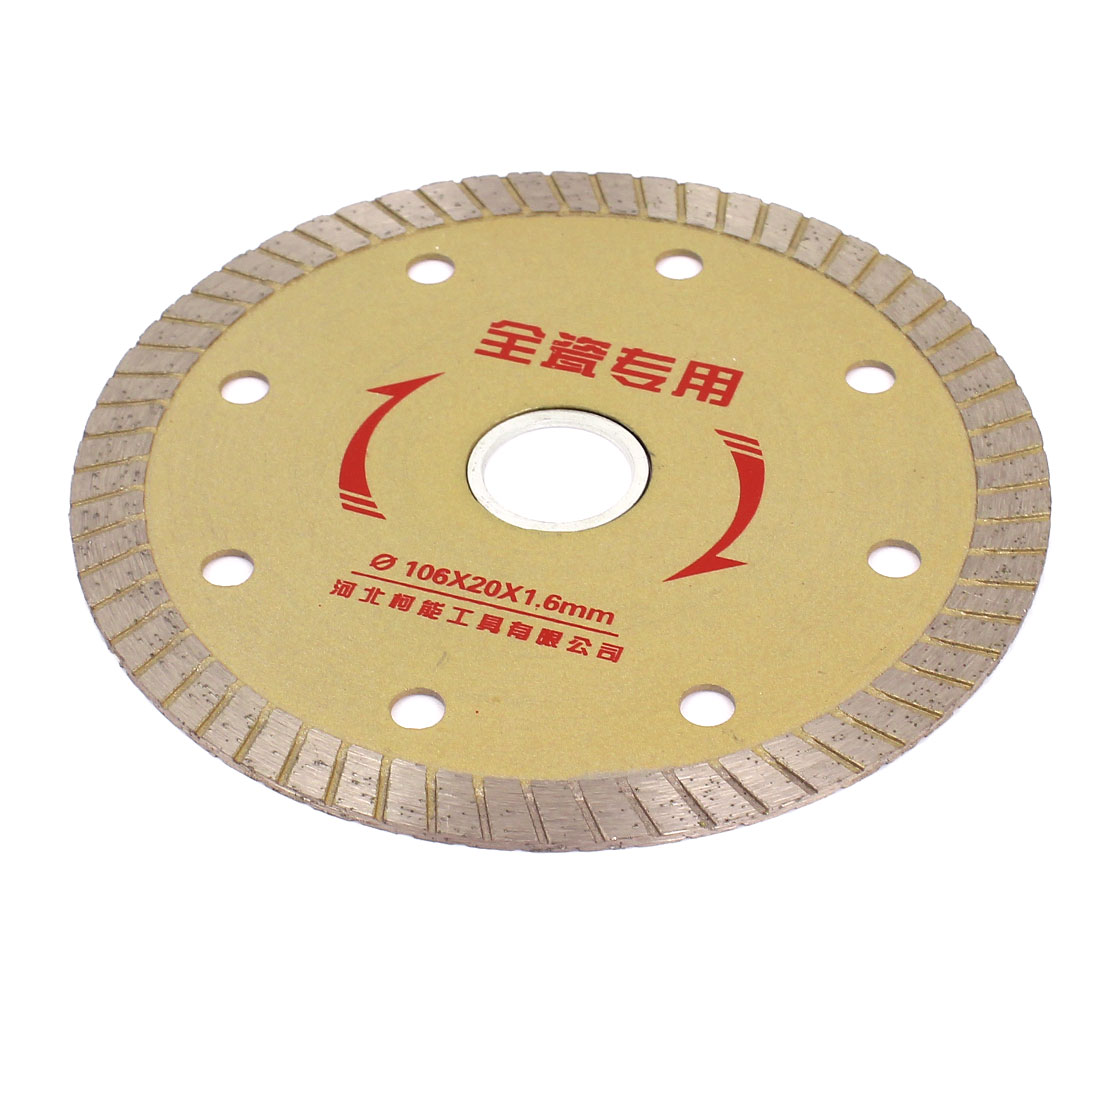 UXCELL Ceramic Granite Tile Diamond Saw Cutter Cutting Disc Wheel 106Mmx20mmx1.6Mm